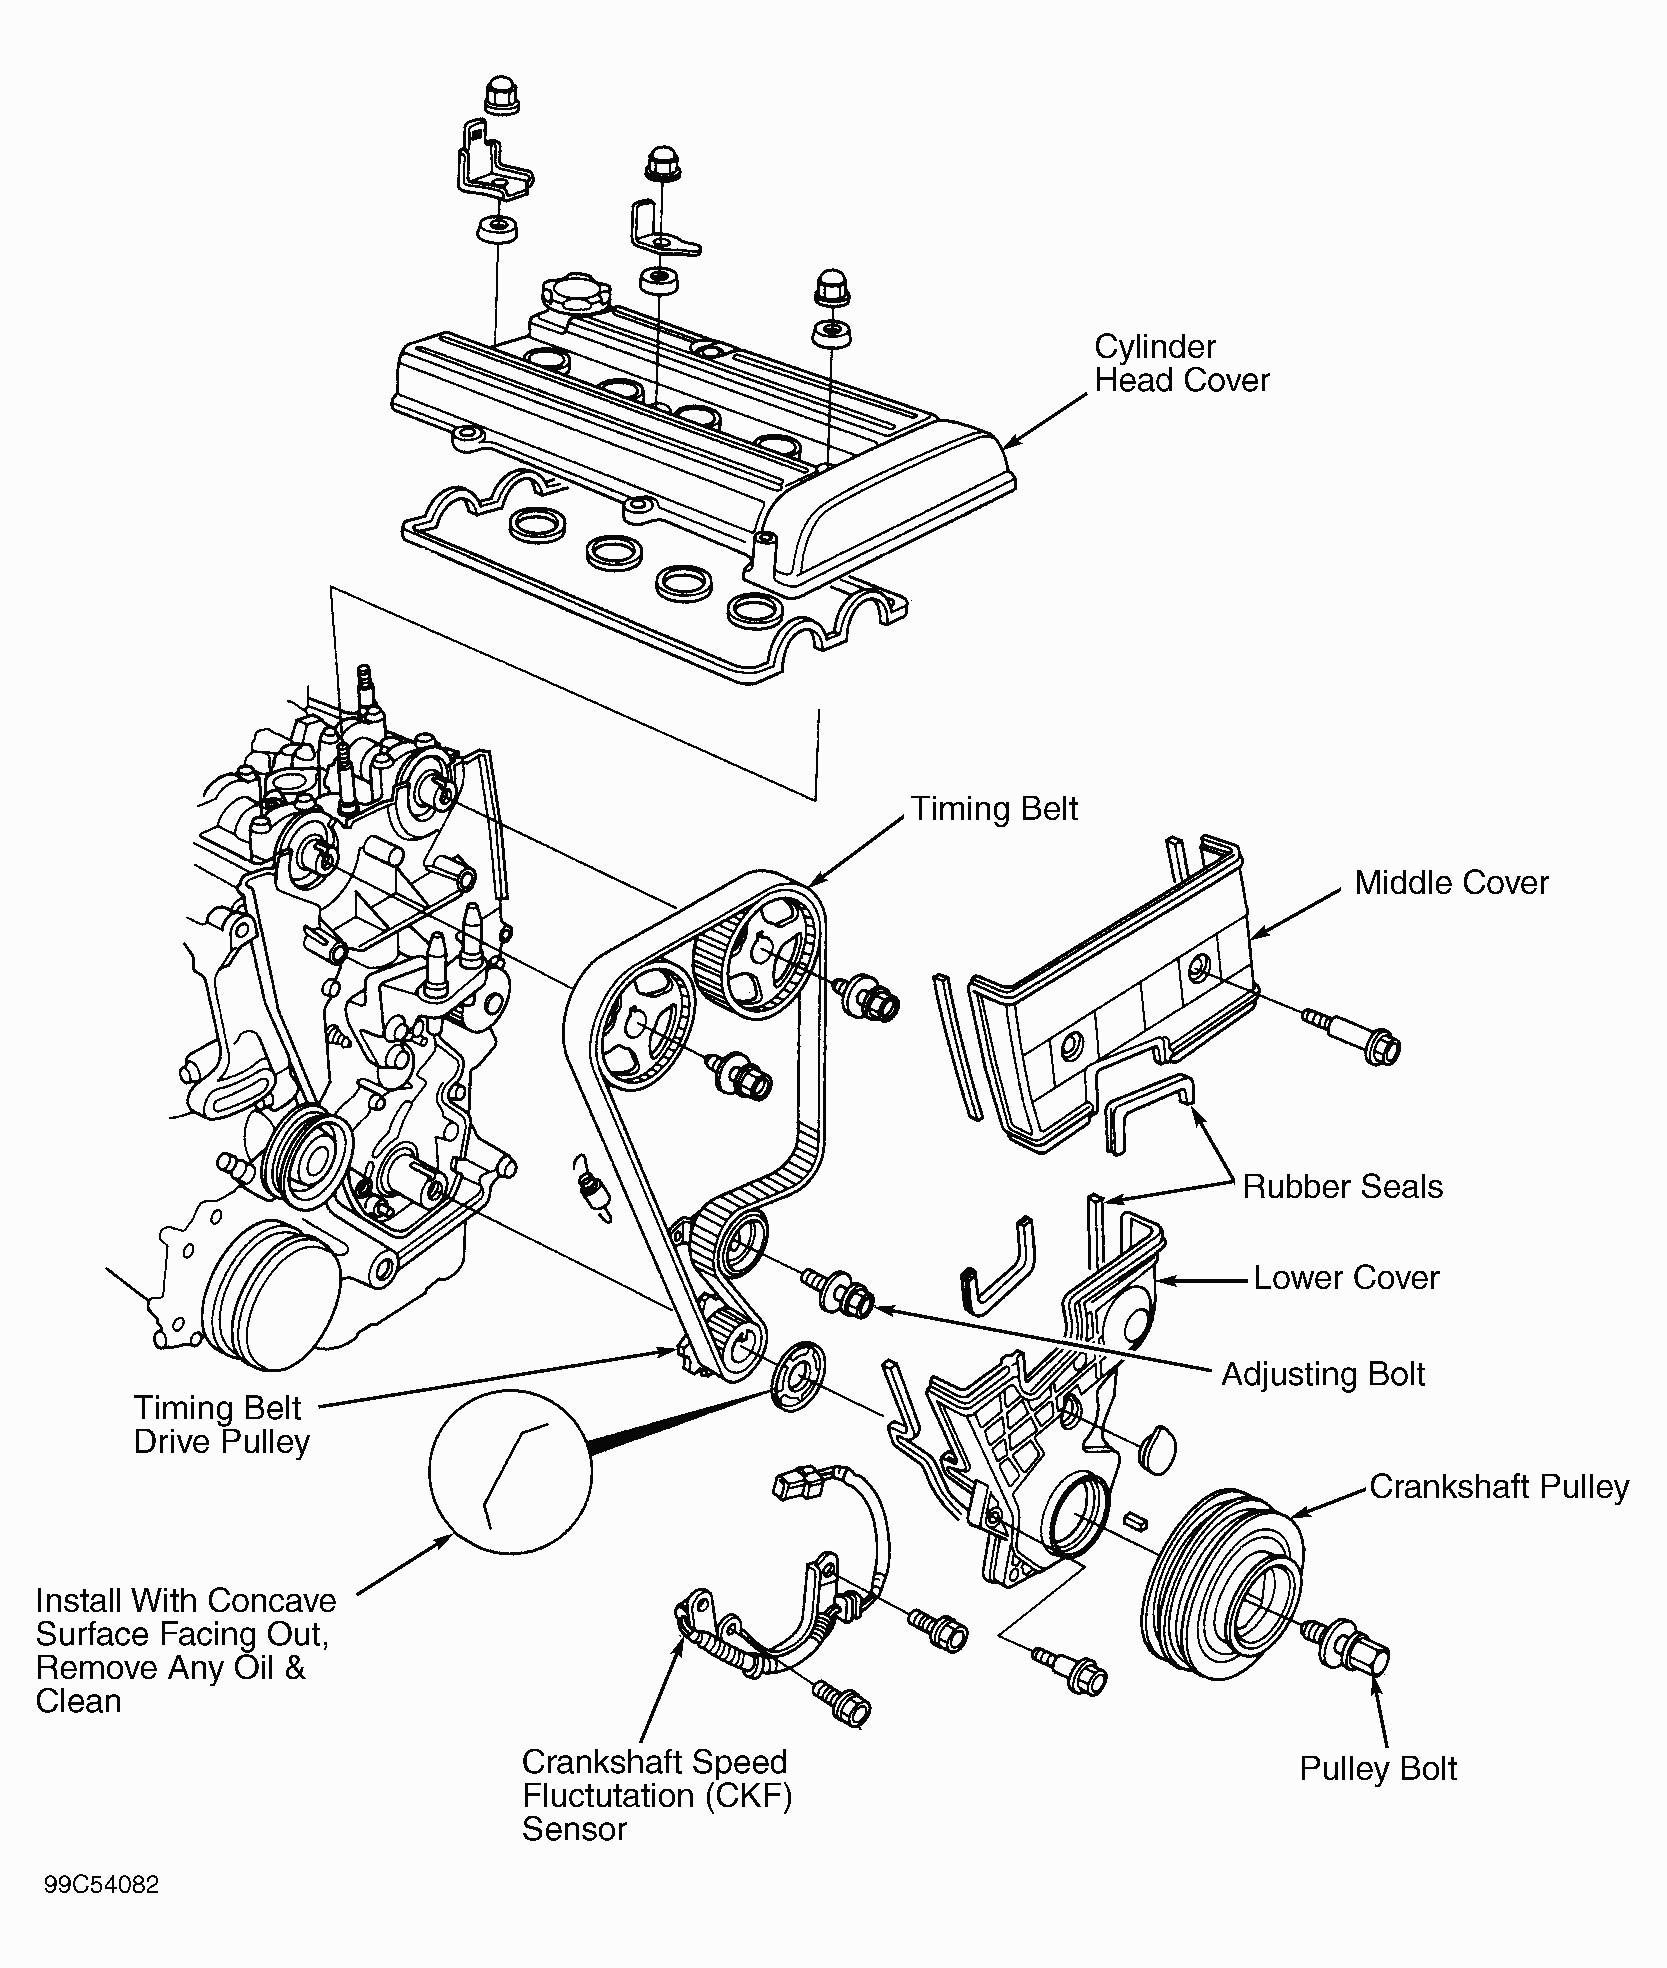 2002 Honda Cr V Engine Diagram Wiring Diagram Gown Expedition Gown Expedition Lasuiteclub It